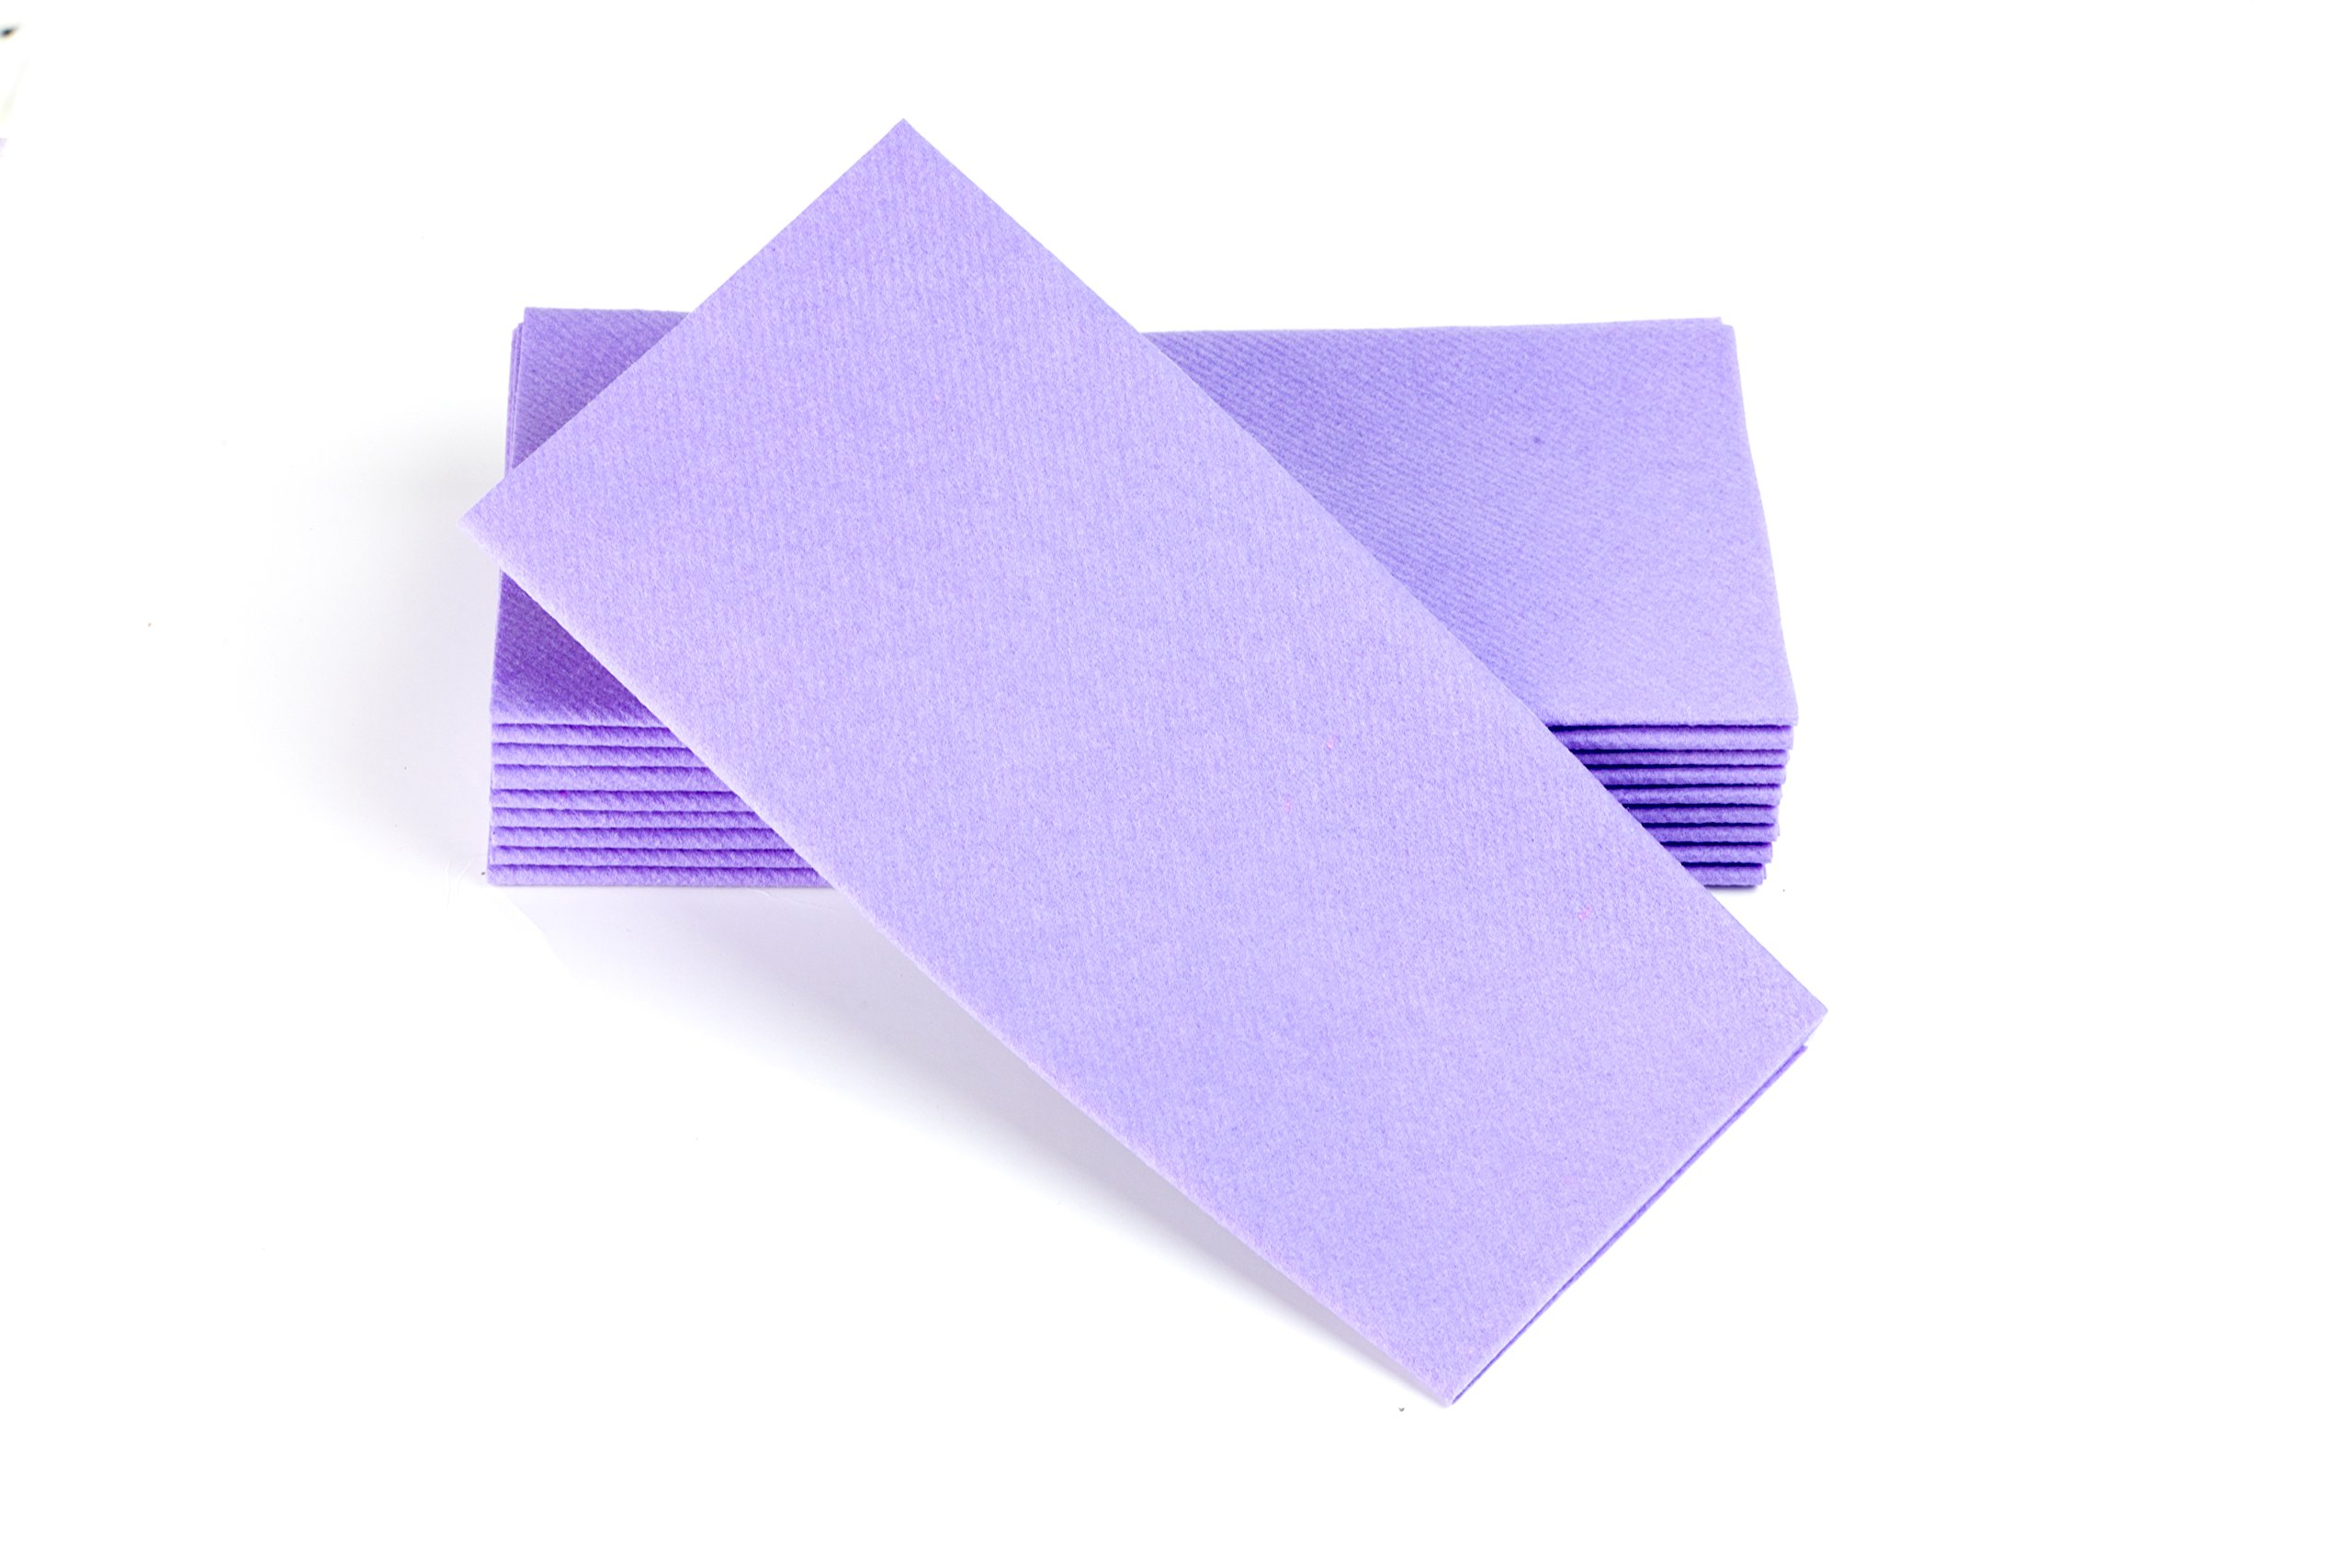 """Simulinen Colored Napkins - Decorative Cloth Like & Disposable, Dinner Napkins - Lavender, Soft, Absorbent & Durable - 16""""x16"""" - Great for Any Occasion! - Box of 50"""